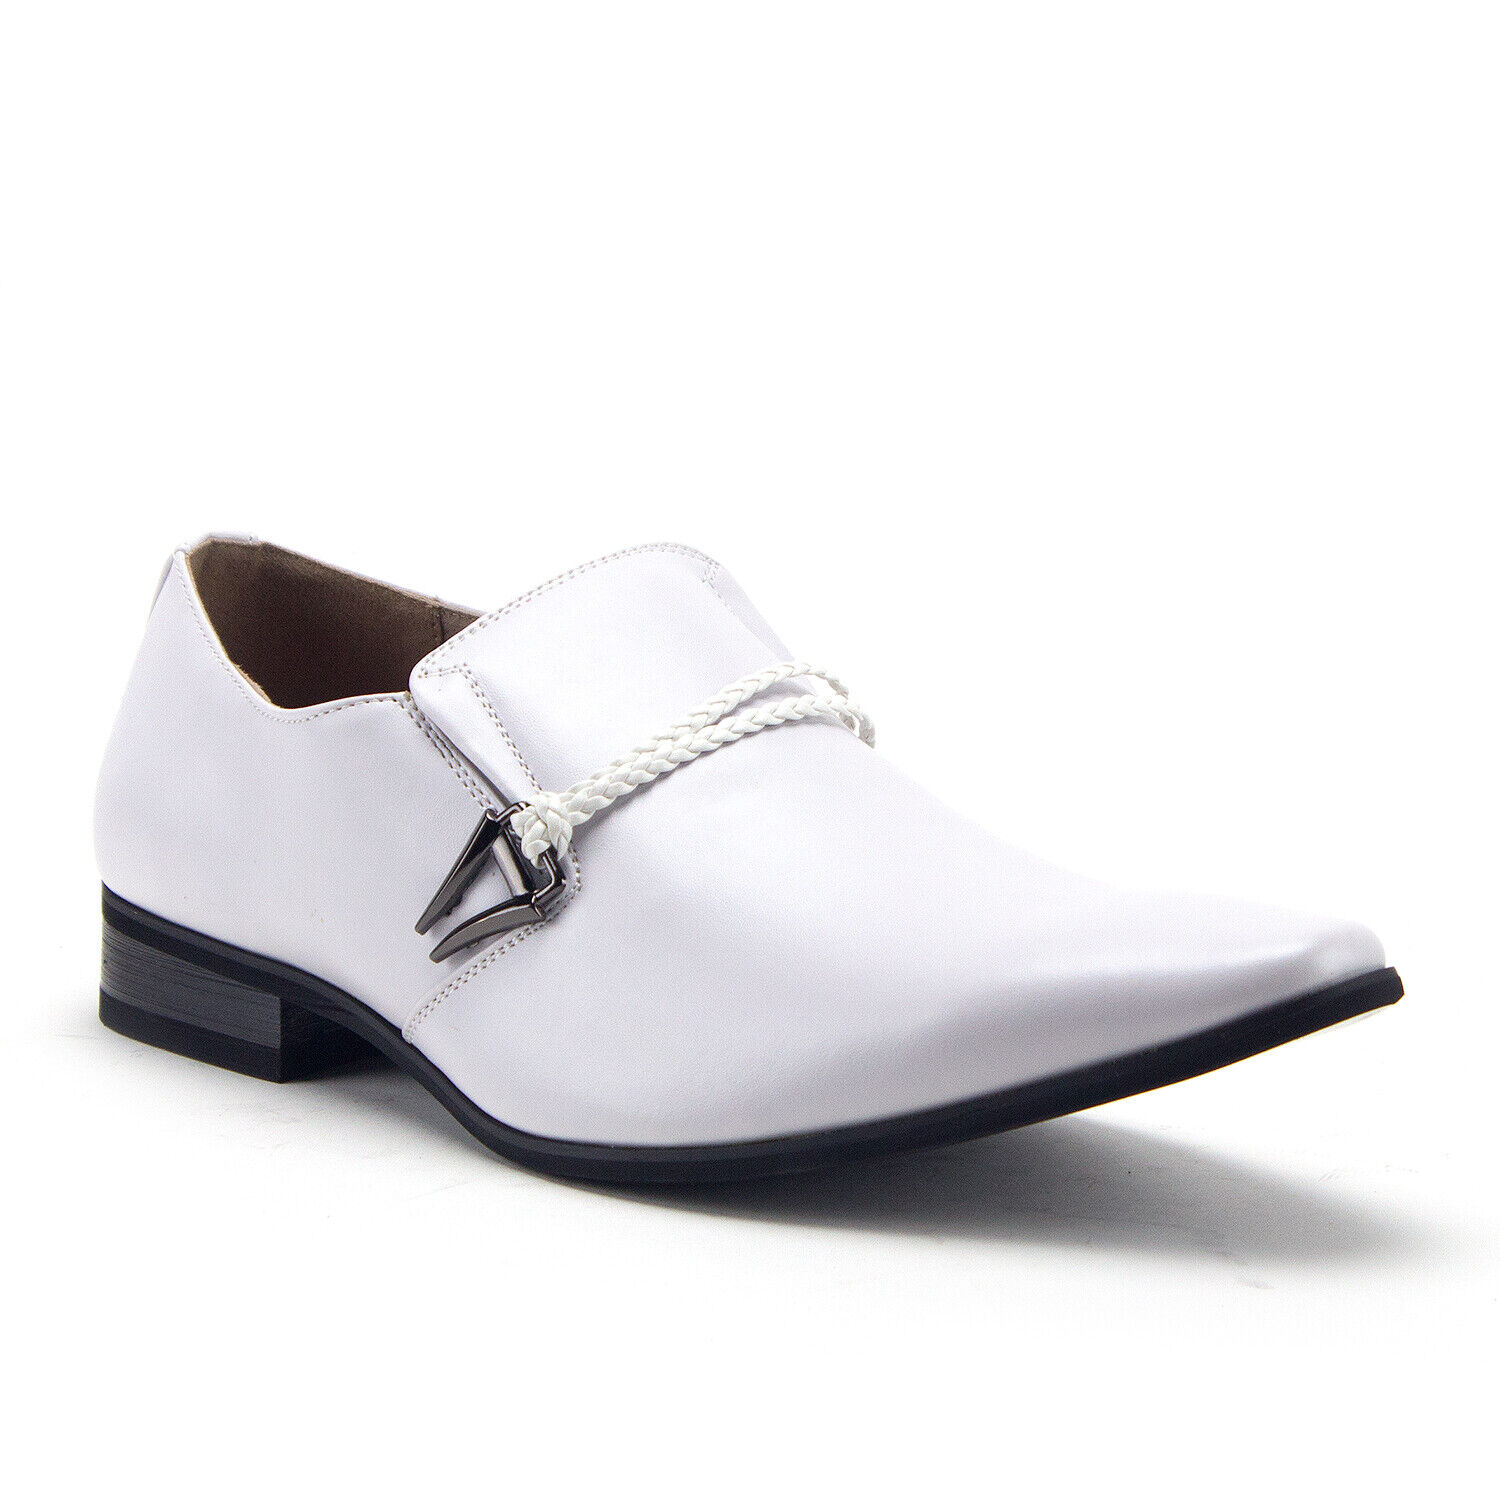 New Men's 98105 Classic Slip On Pointy Toe Belted Casual Loafers Dress shoes